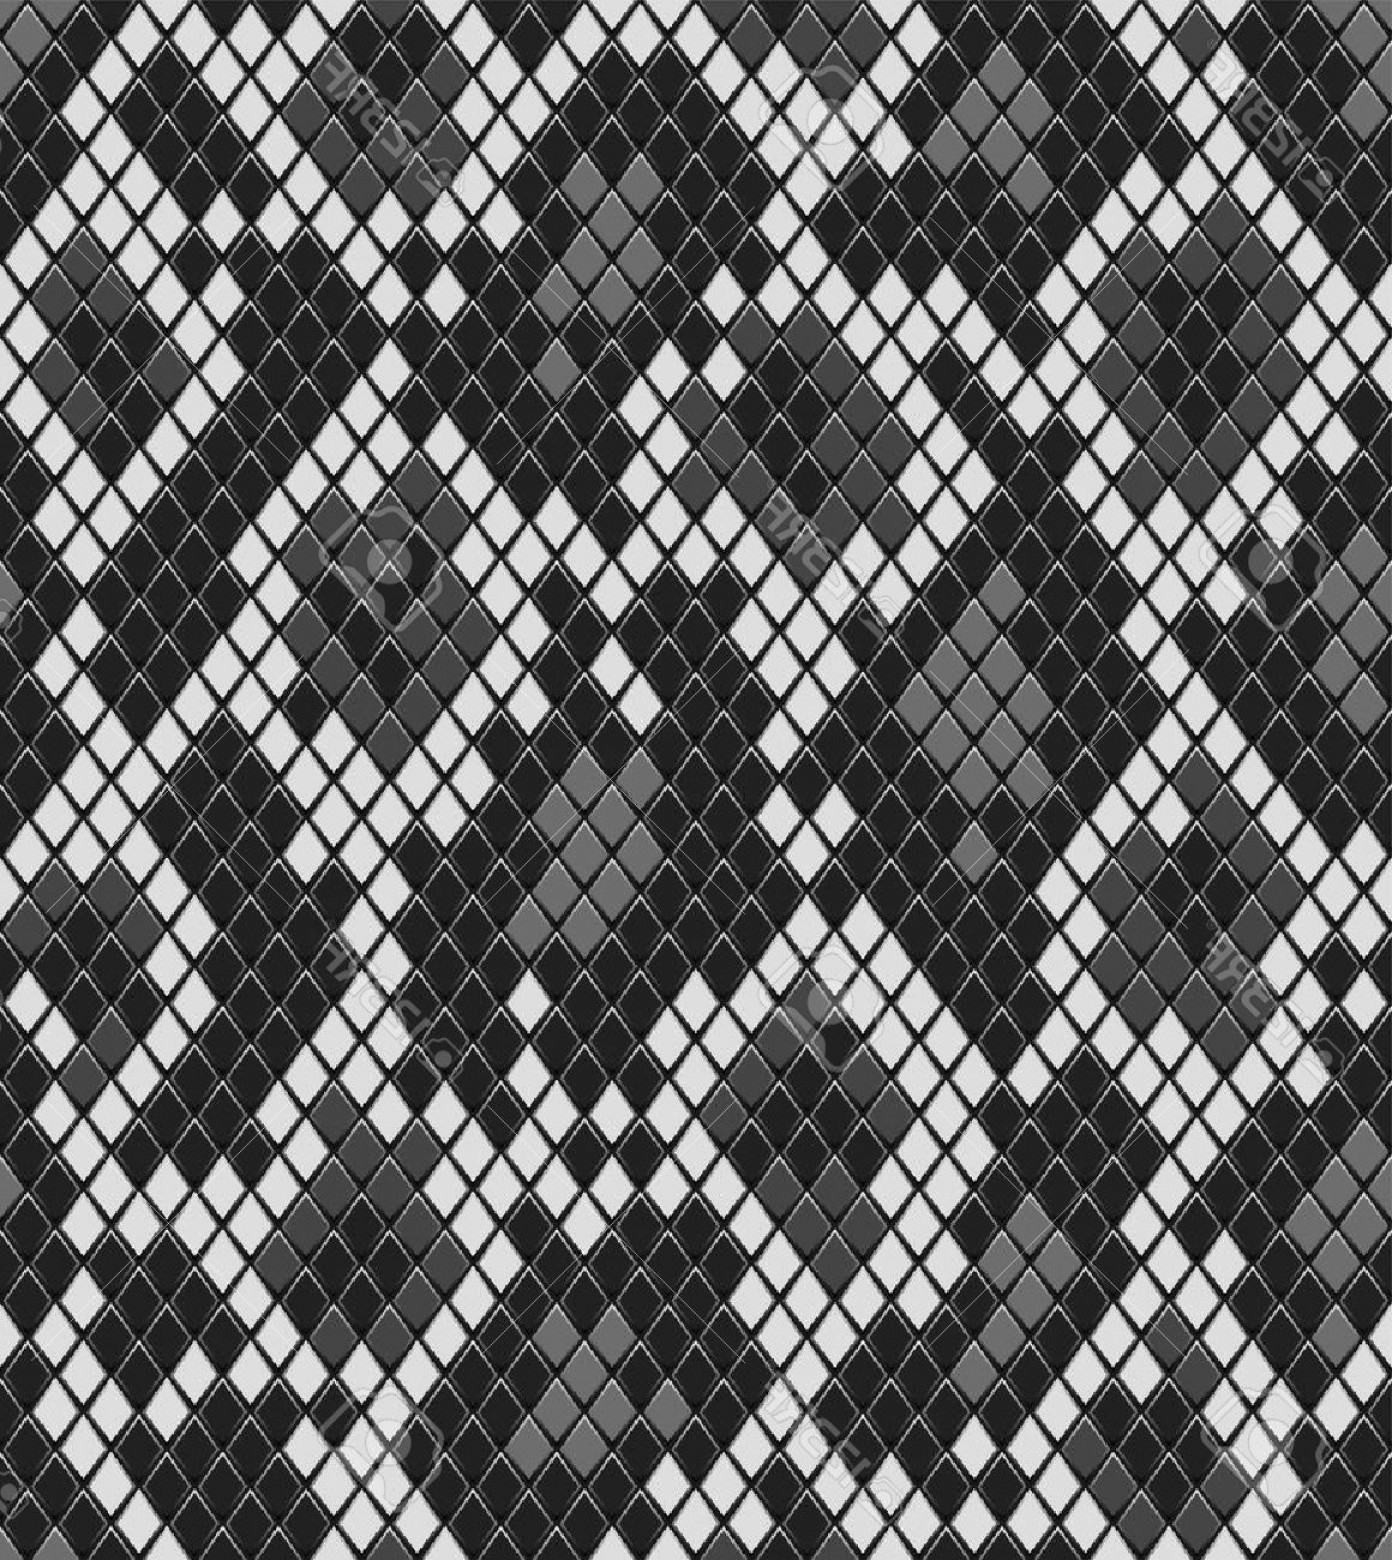 Alligator Skin Texture Vector: Photosnake Reptile Or Crocodile Skin Seamless Pattern In Shades Of Grey Vector